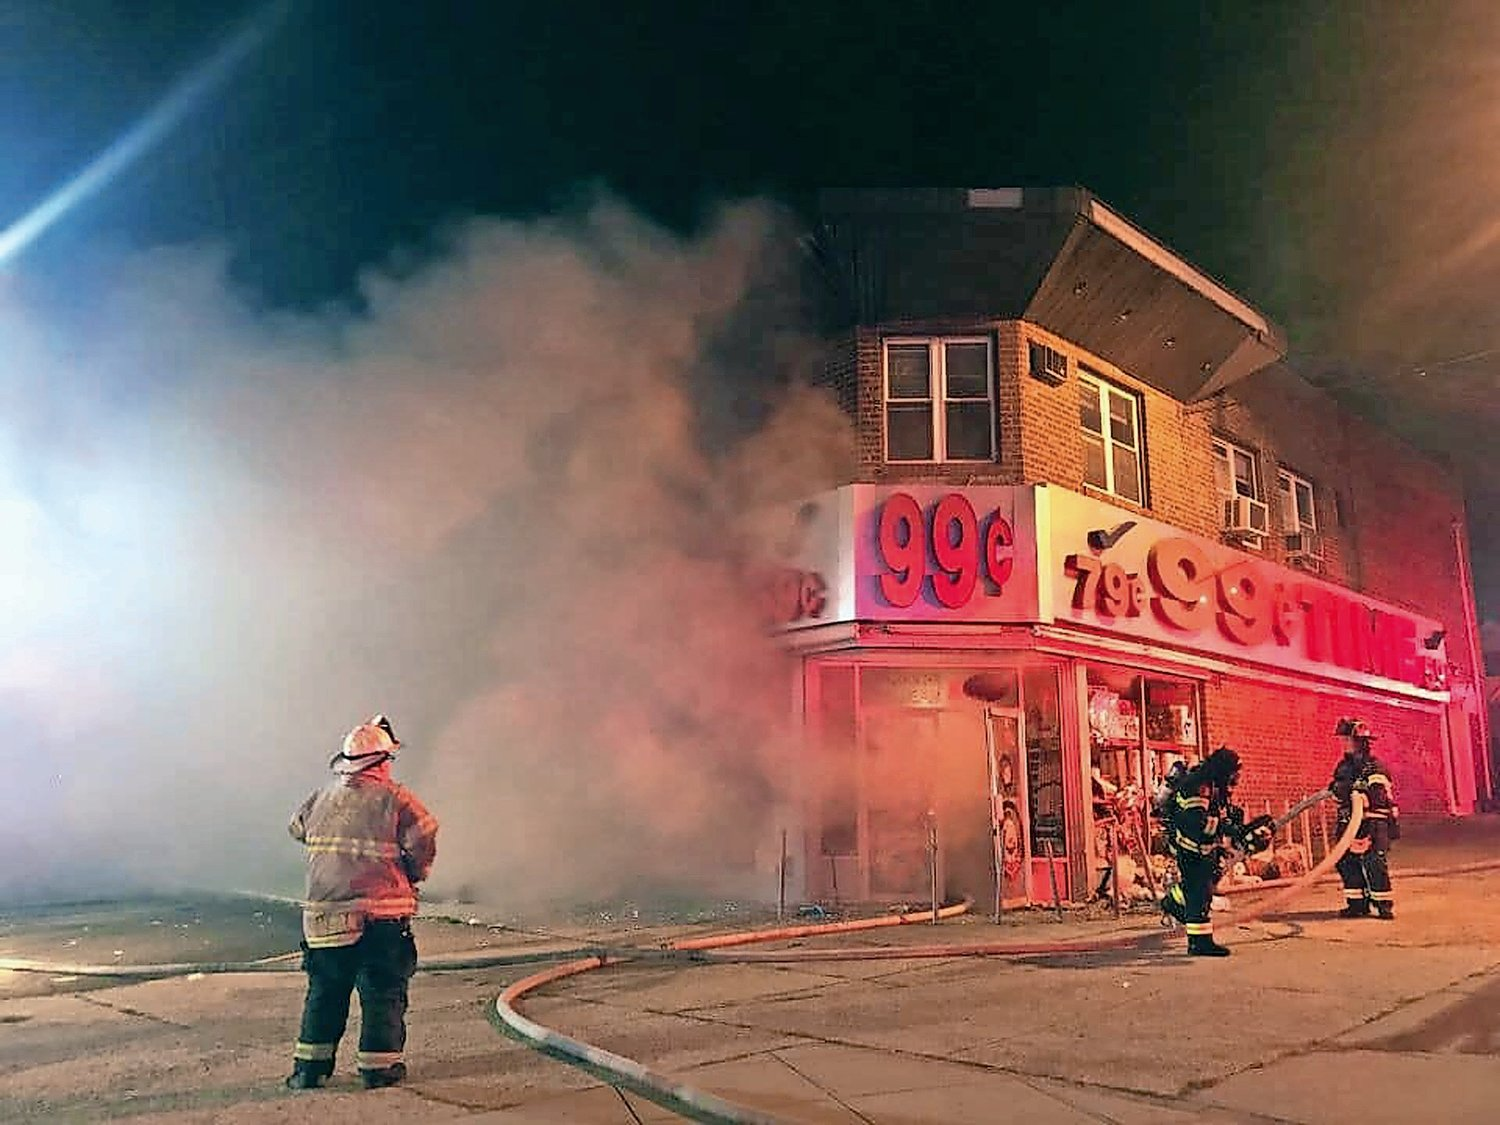 A fire broke out at 99 Cent Time in Elmont on Sept. 14.